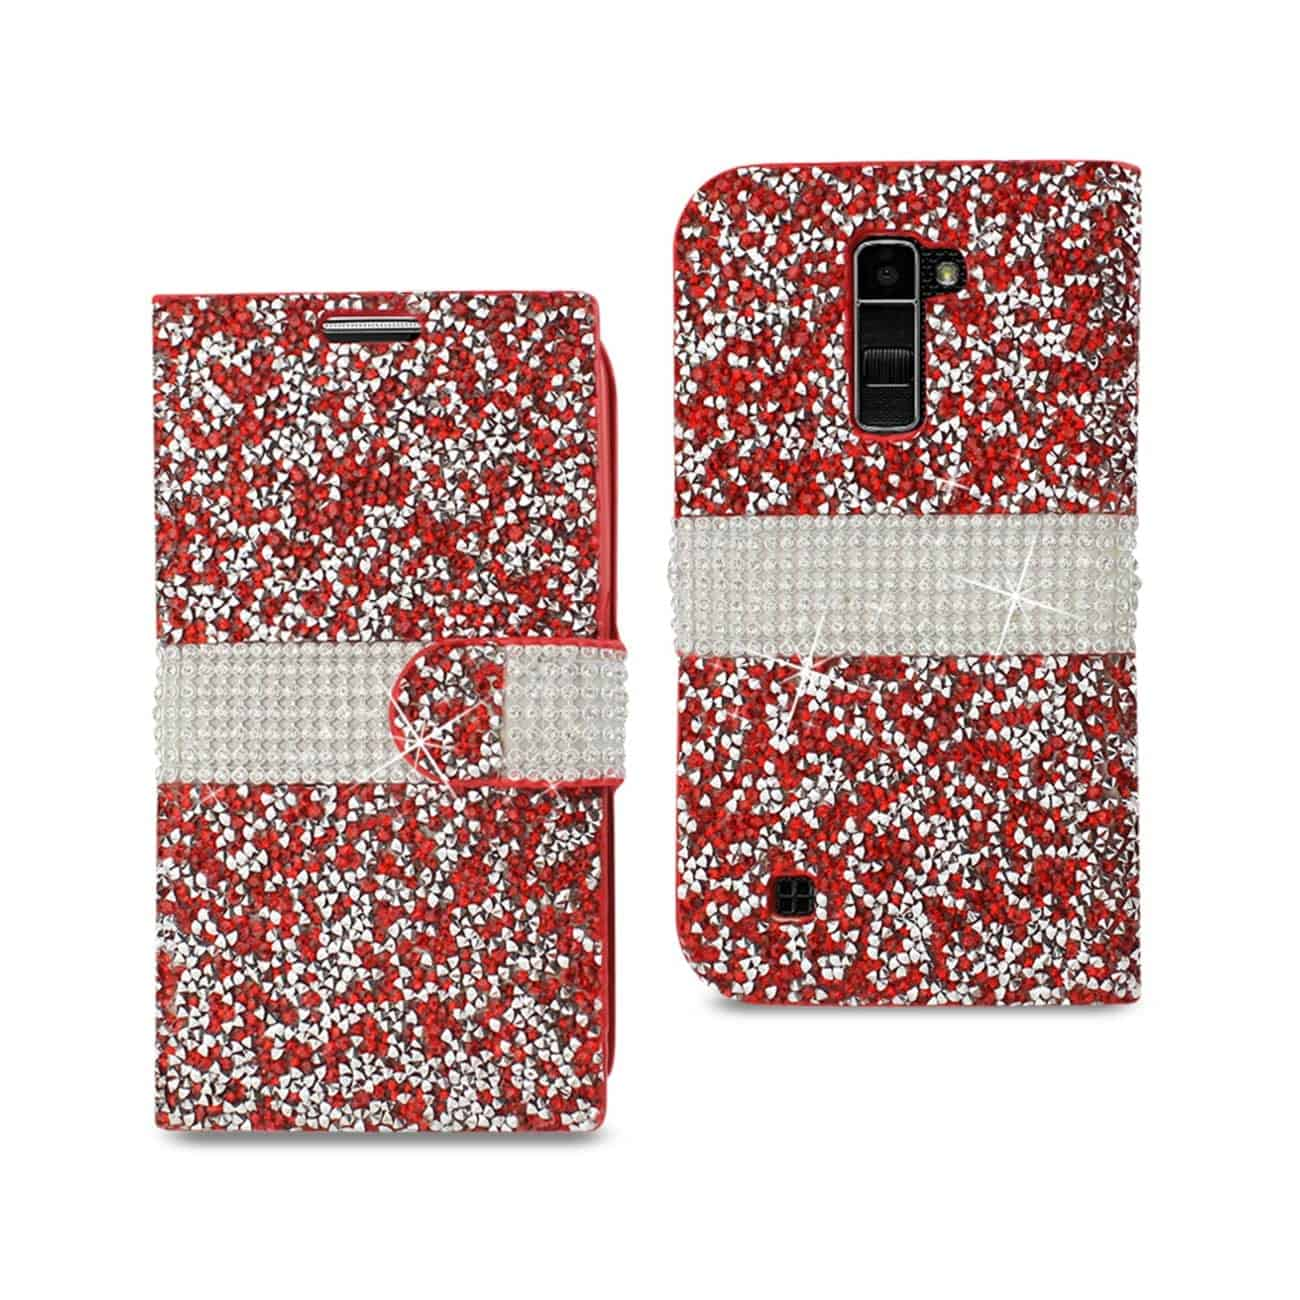 LG K10 JEWELRY RHINESTONE WALLET CASE IN RED